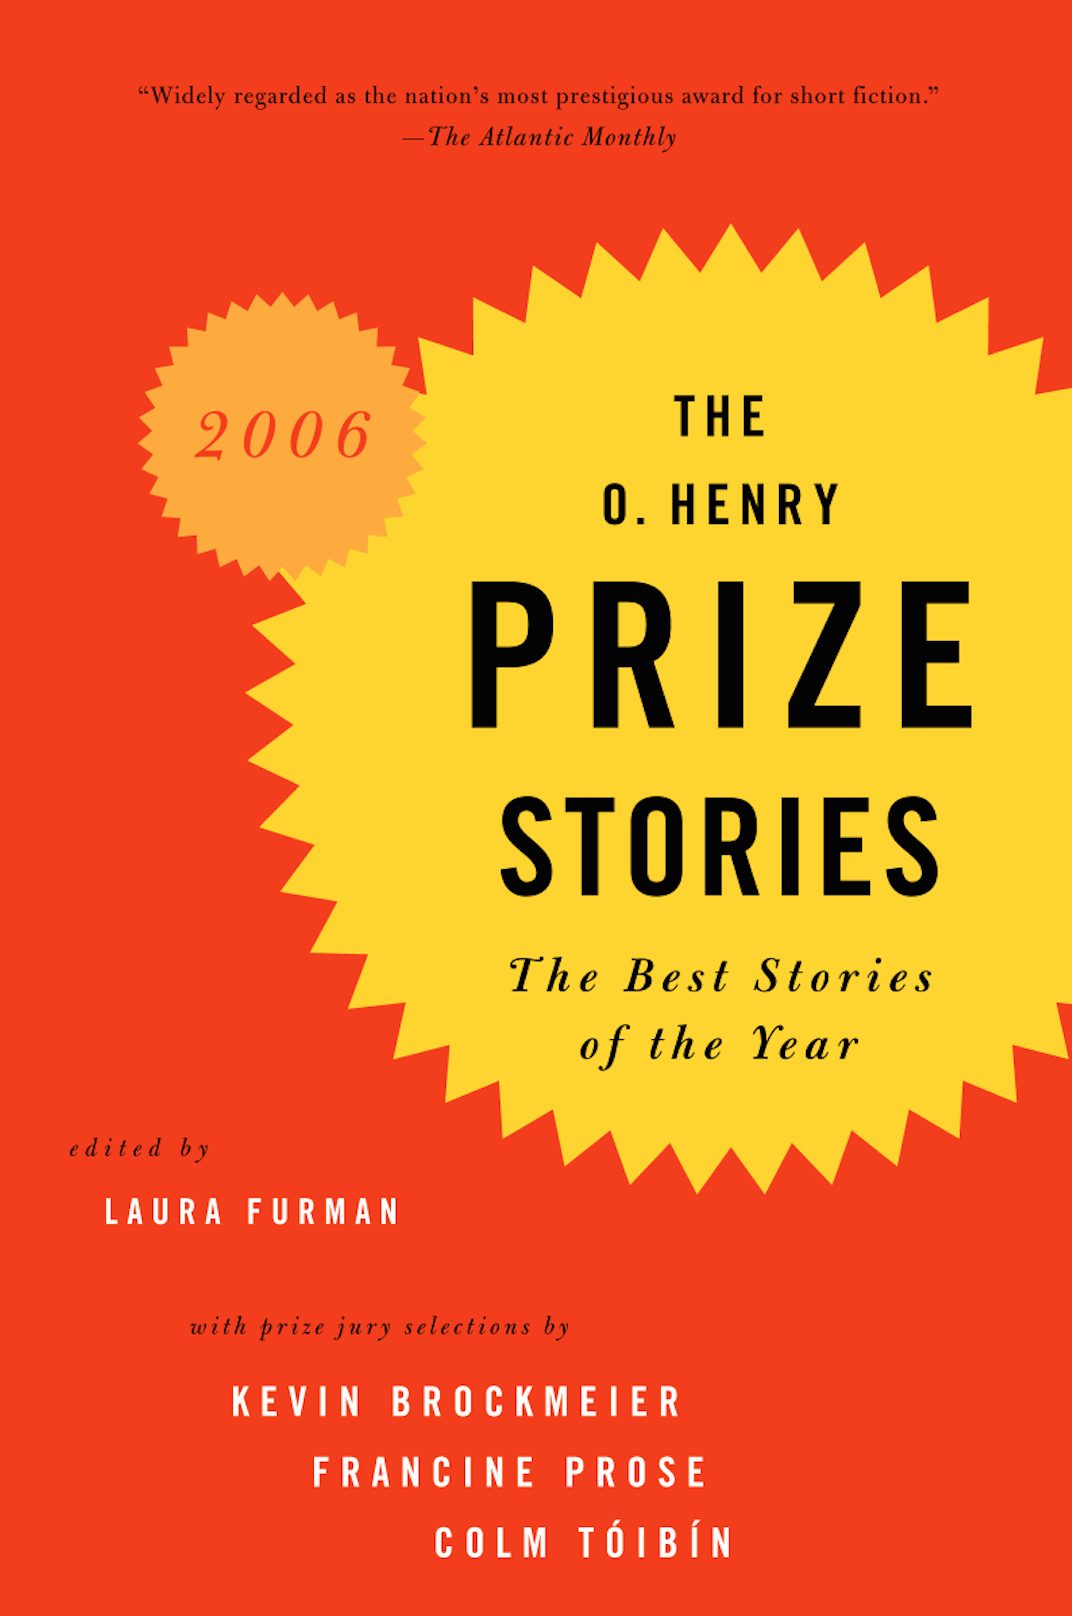 """The O. Henry Prize Stories: The Best Stories of the Year, 2006 - """"The Pelvis Series,"""" by Neela Vaswani""""Language itself is the secret subject that drives another Eve—a linguist, not a biblical figure—in Neela Vaswani's """"The Pelvis Series."""" In her research, Eve tries to push past the limits of species differences and develops a capacity for generosity and loyalty that's absent in her human relationships. The charming affection Eve feels for her favorite chimp, Lola, is balanced by the cool reality of the primates' life among the scientists.""""–Laura Furman, editor""""Fascinating story about learning and language""""–Patrick Rapa, editor""""One of the stories that I love to read again and again and again and again. Imaginative and beautiful.""""– Laura Pegram, editor"""